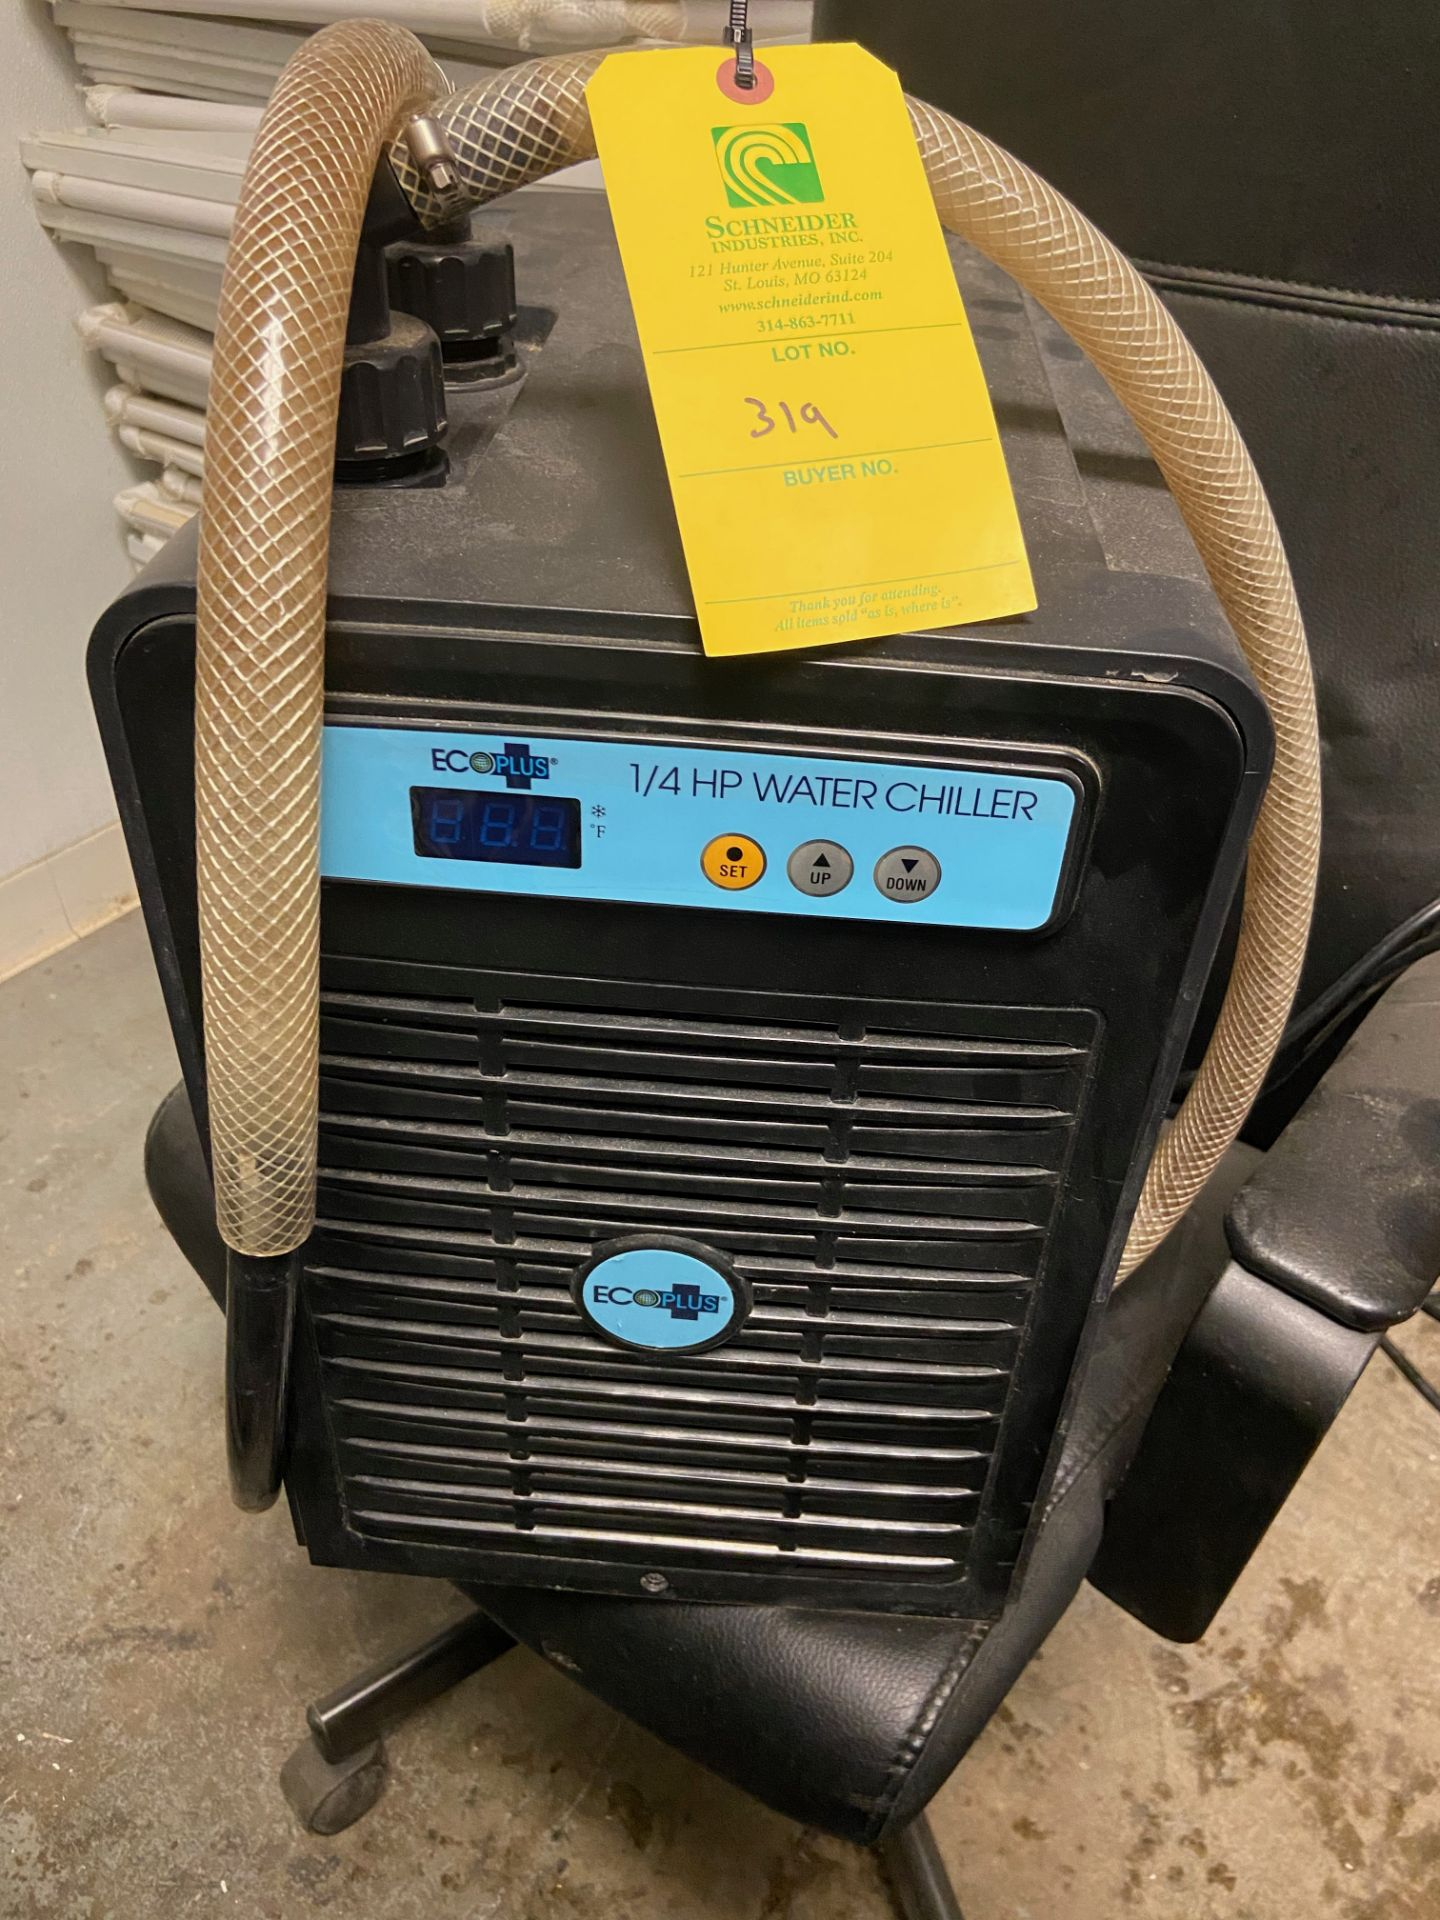 ECO Plus 1/4 HP Water Chiller with Reservoir, 110-120V, 60Hz - Image 2 of 5